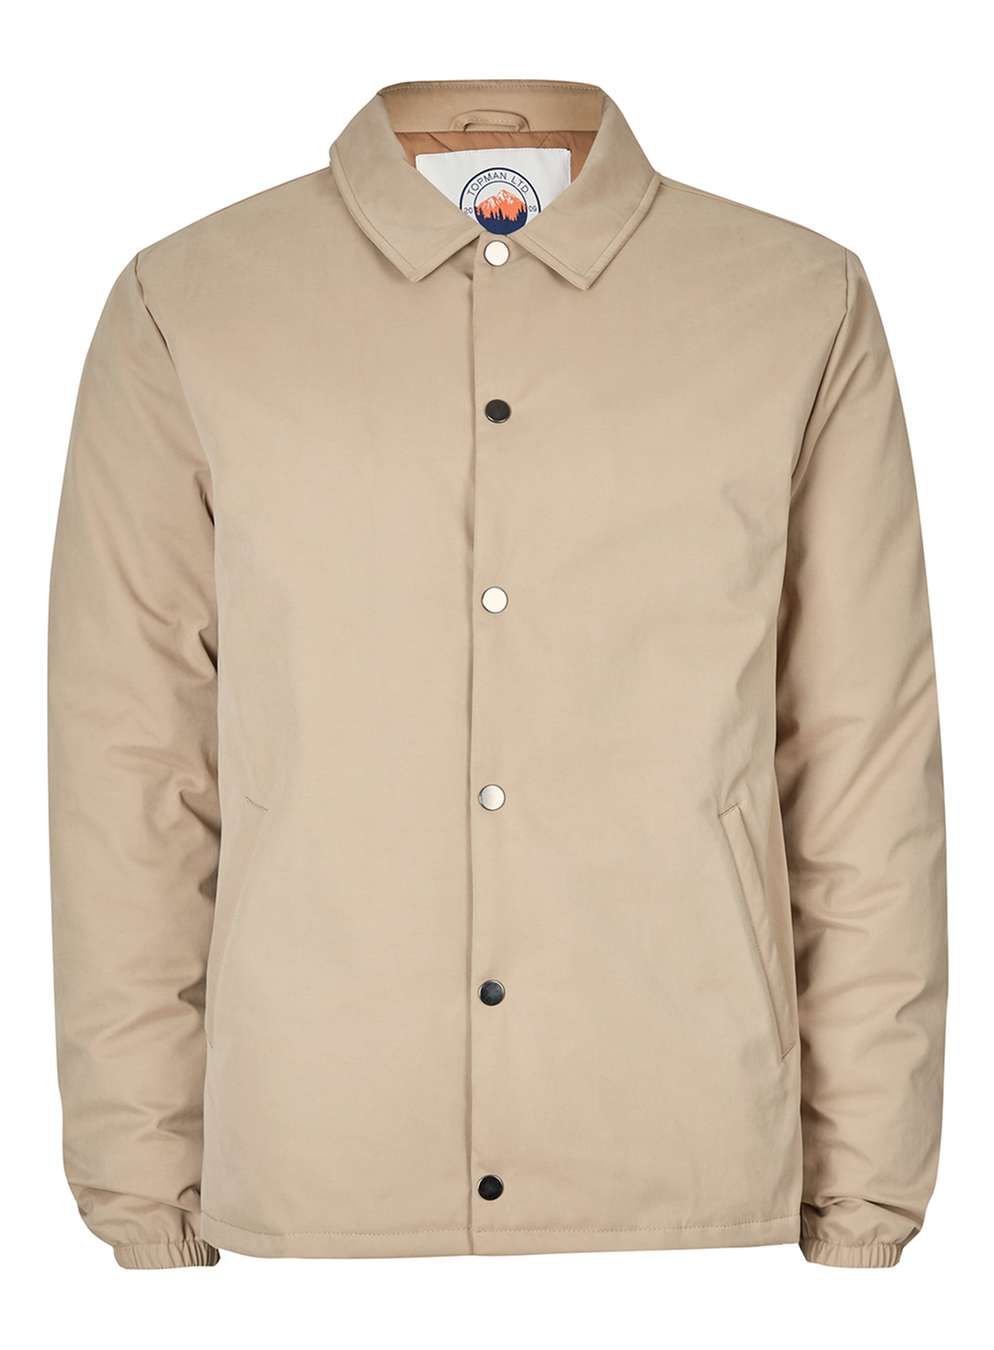 TOPMAN LTD Stone Premium Duck Down Coach Jacket, £80